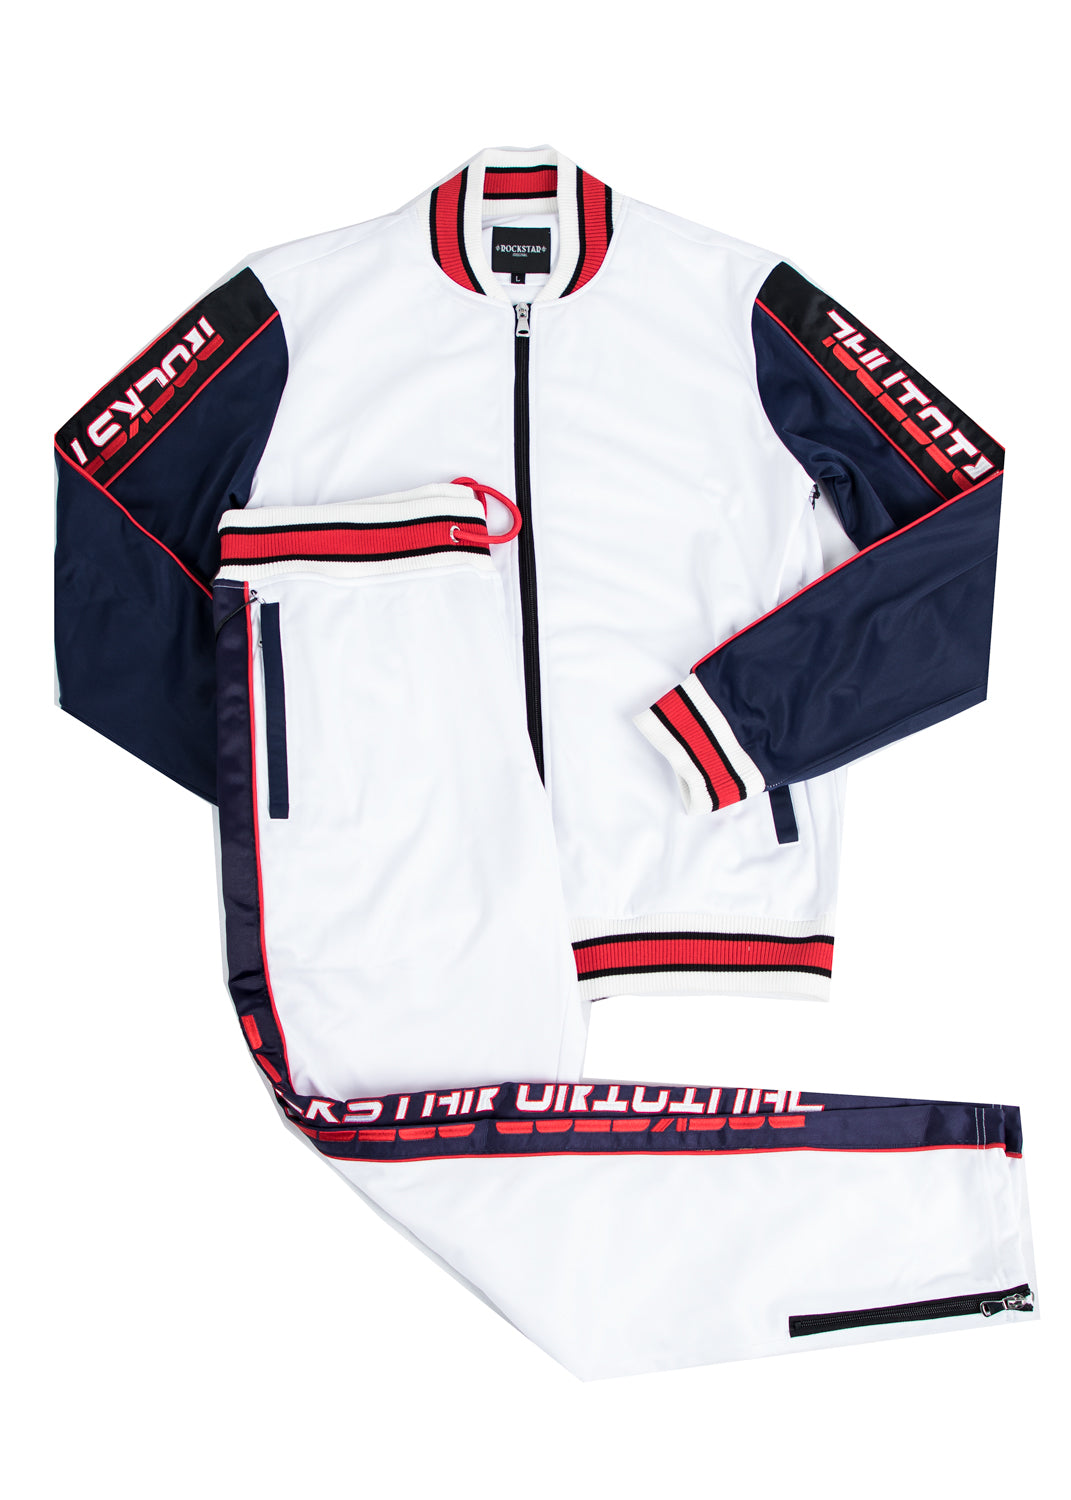 Kids Beck 4.0 (White) Track Suit